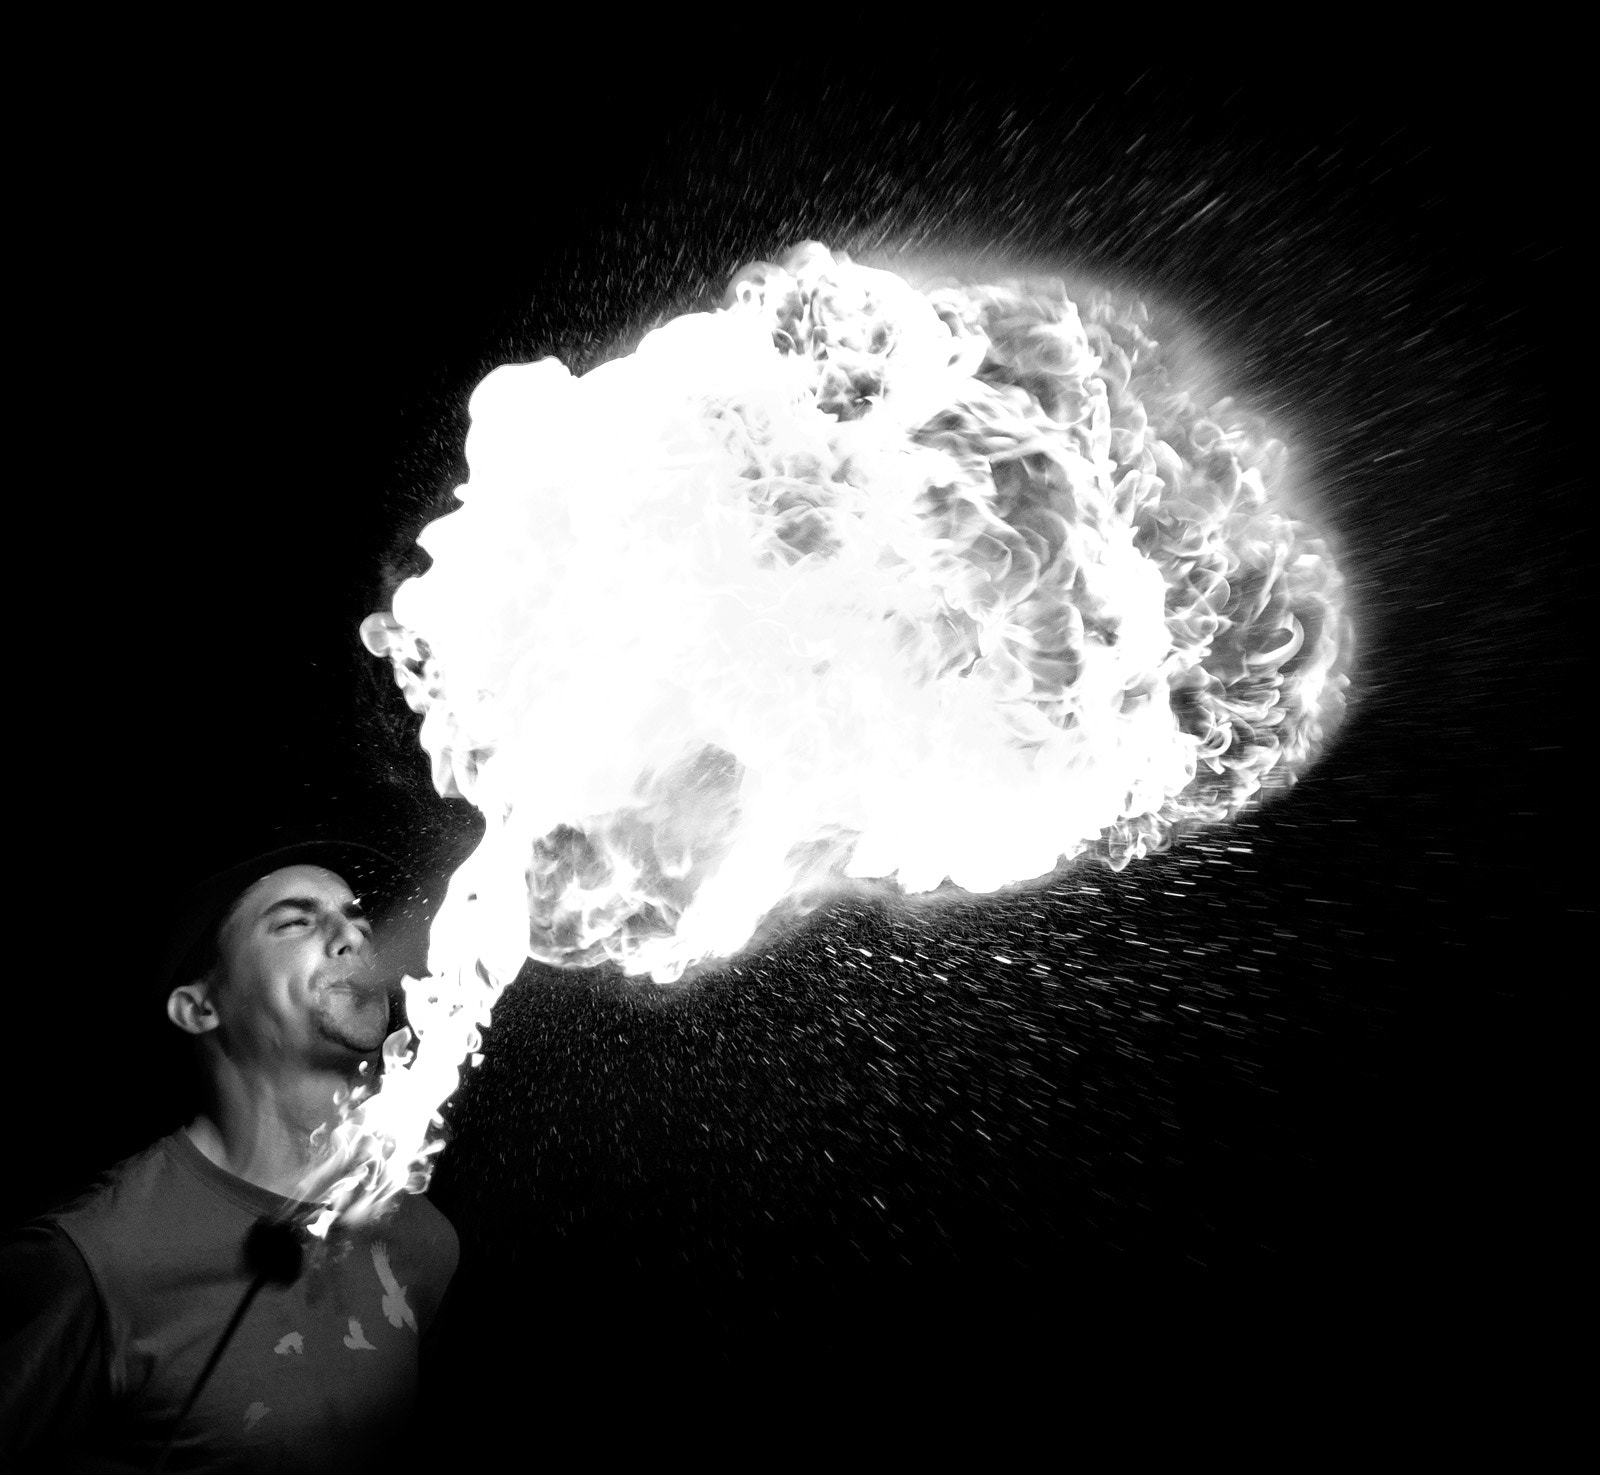 Photograph Firebreath by Esten Hurtle on 500px